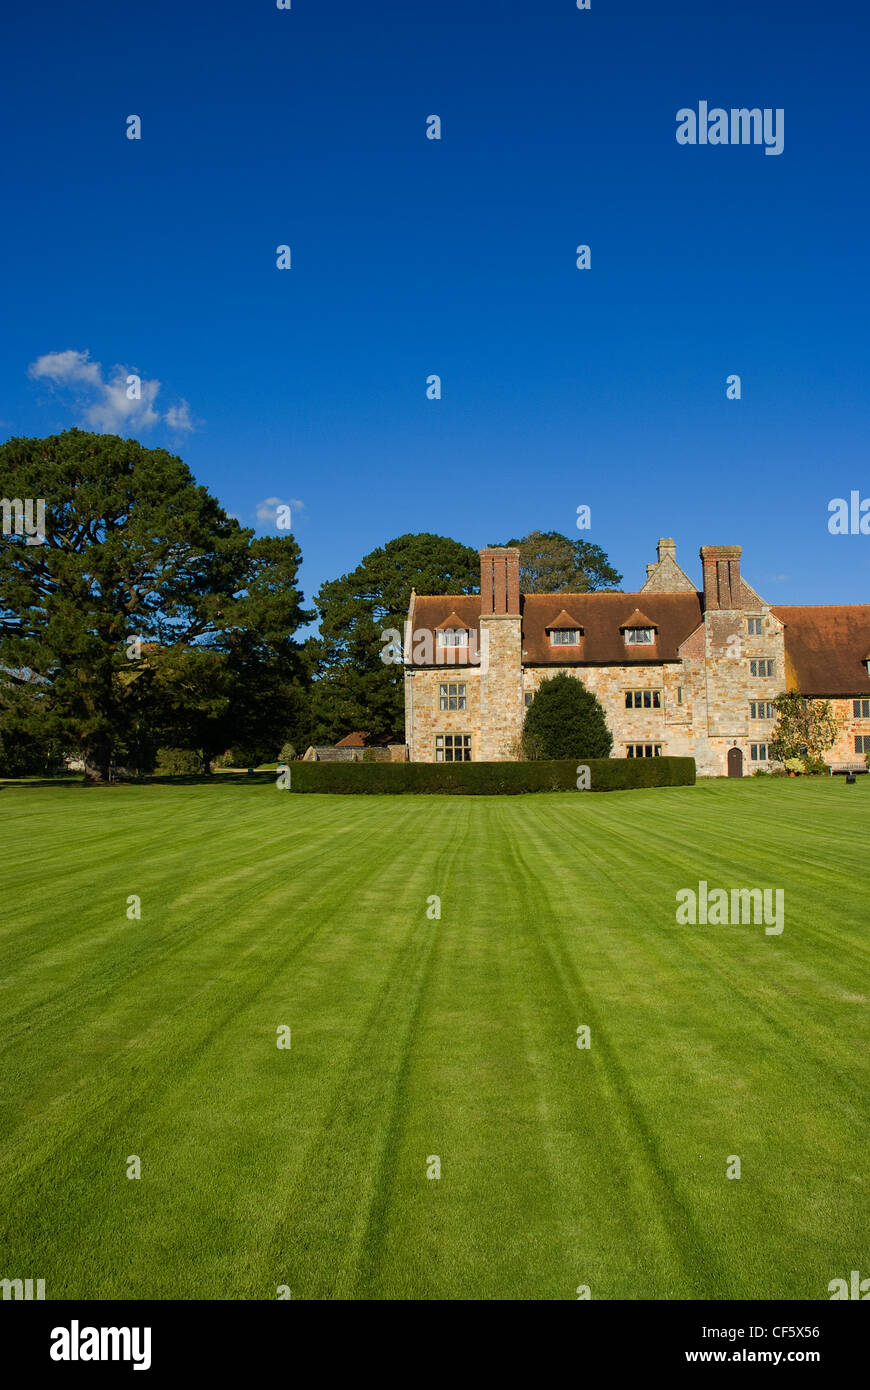 Michelham Priory and Gardens, a tudor mansion that evolved from a former Augustinian Priory. - Stock Image